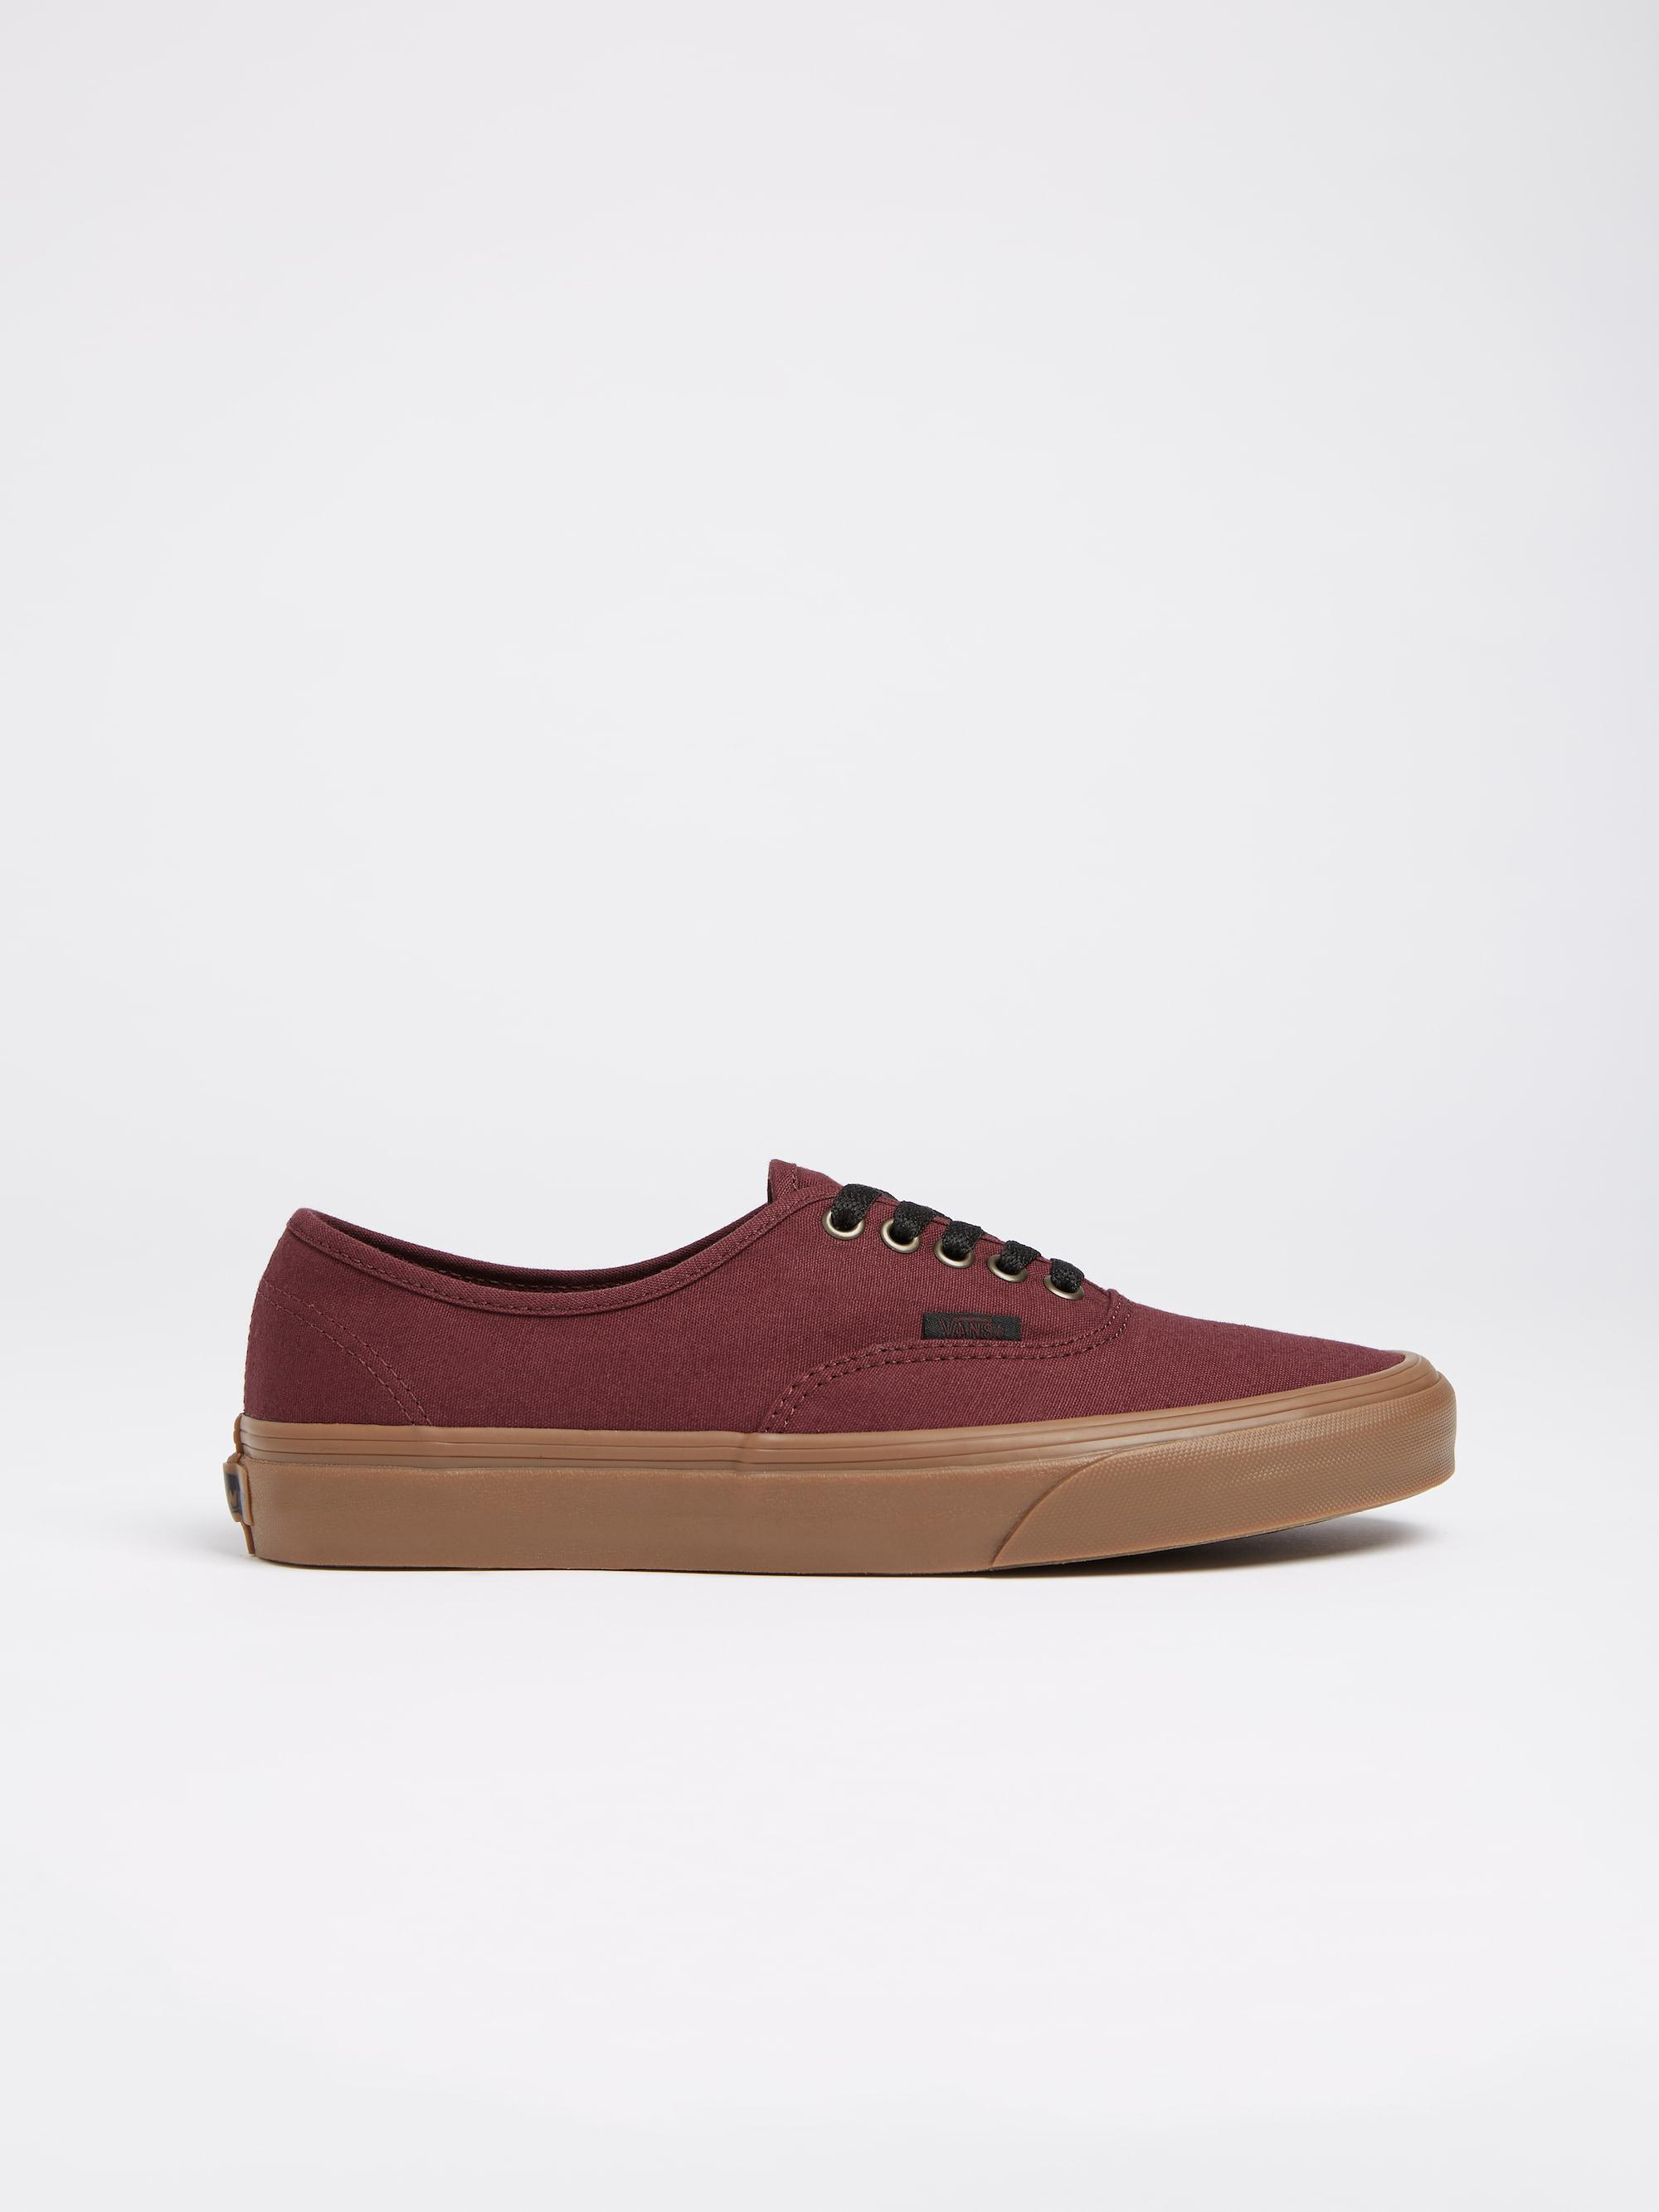 32e99b901b2e0a Lyst - Frank And Oak Vans Gum Authentic in Red for Men